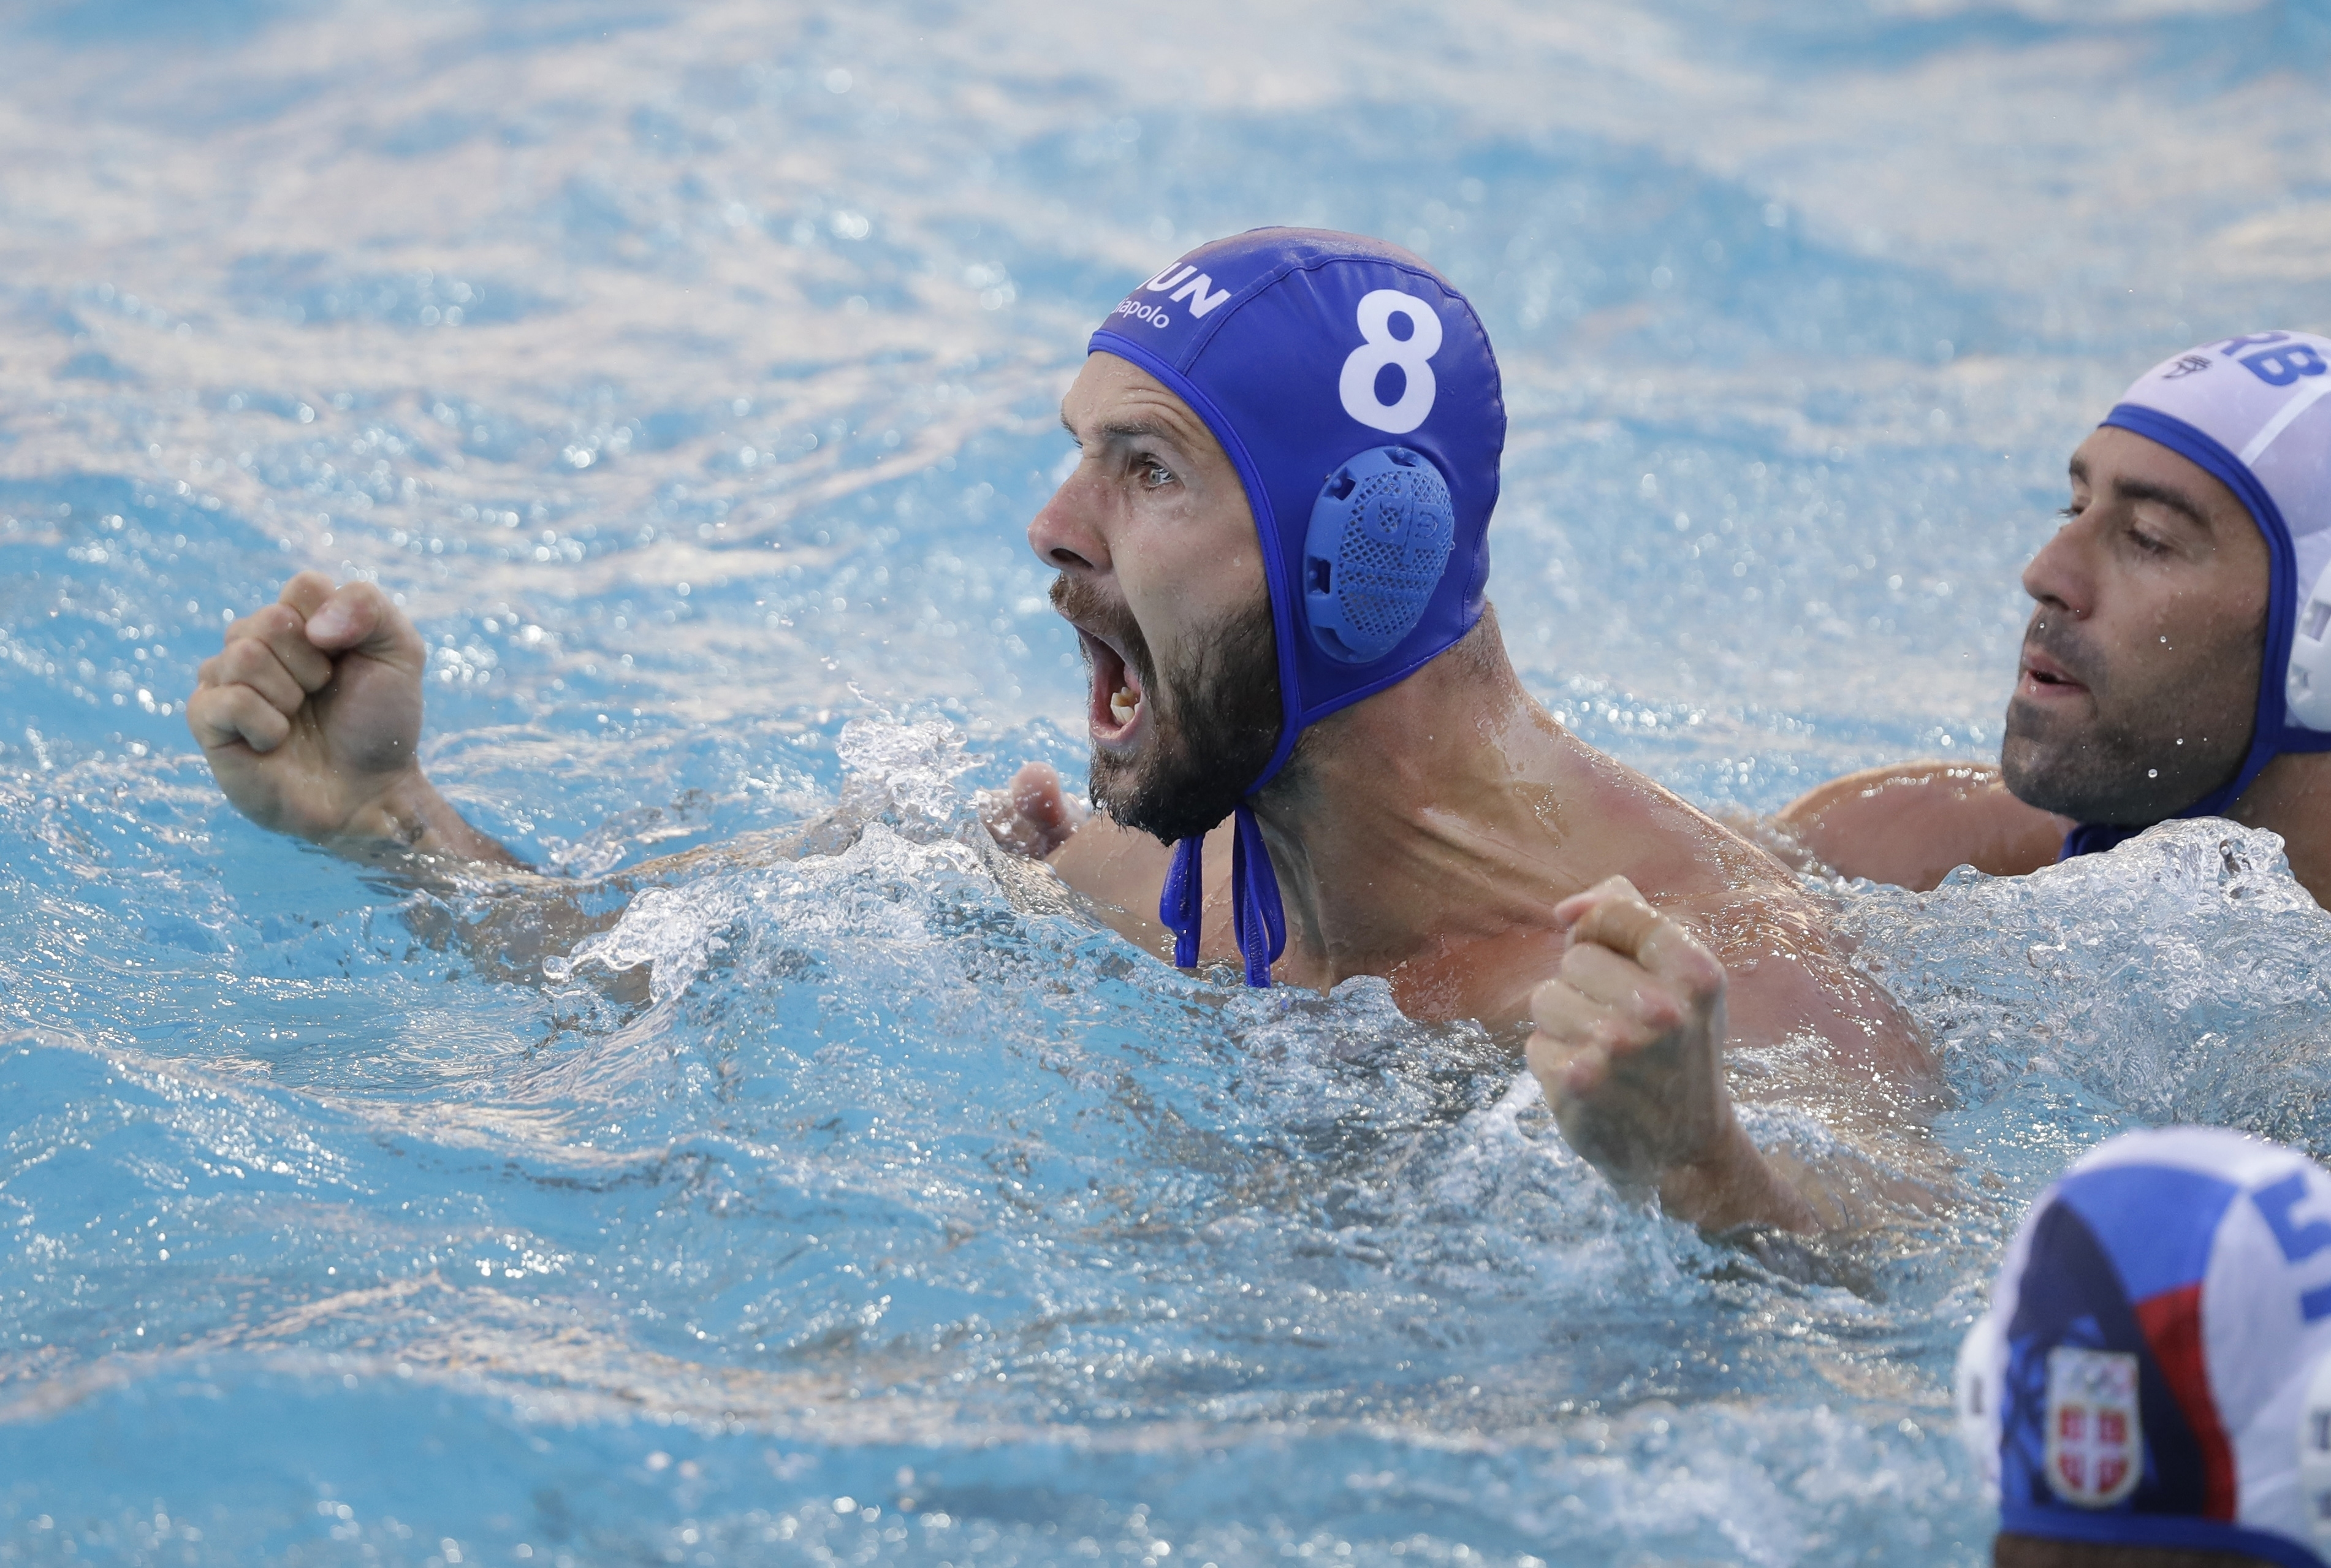 Hungary???s Marton Szivos reacts to a goal against Serbia during a preliminary men's water polo match at the 2016 Summer Olympics in Rio de Janeiro, Brazil, Saturday, Aug. 6, 2016. (AP Photo/Sergei Grits)